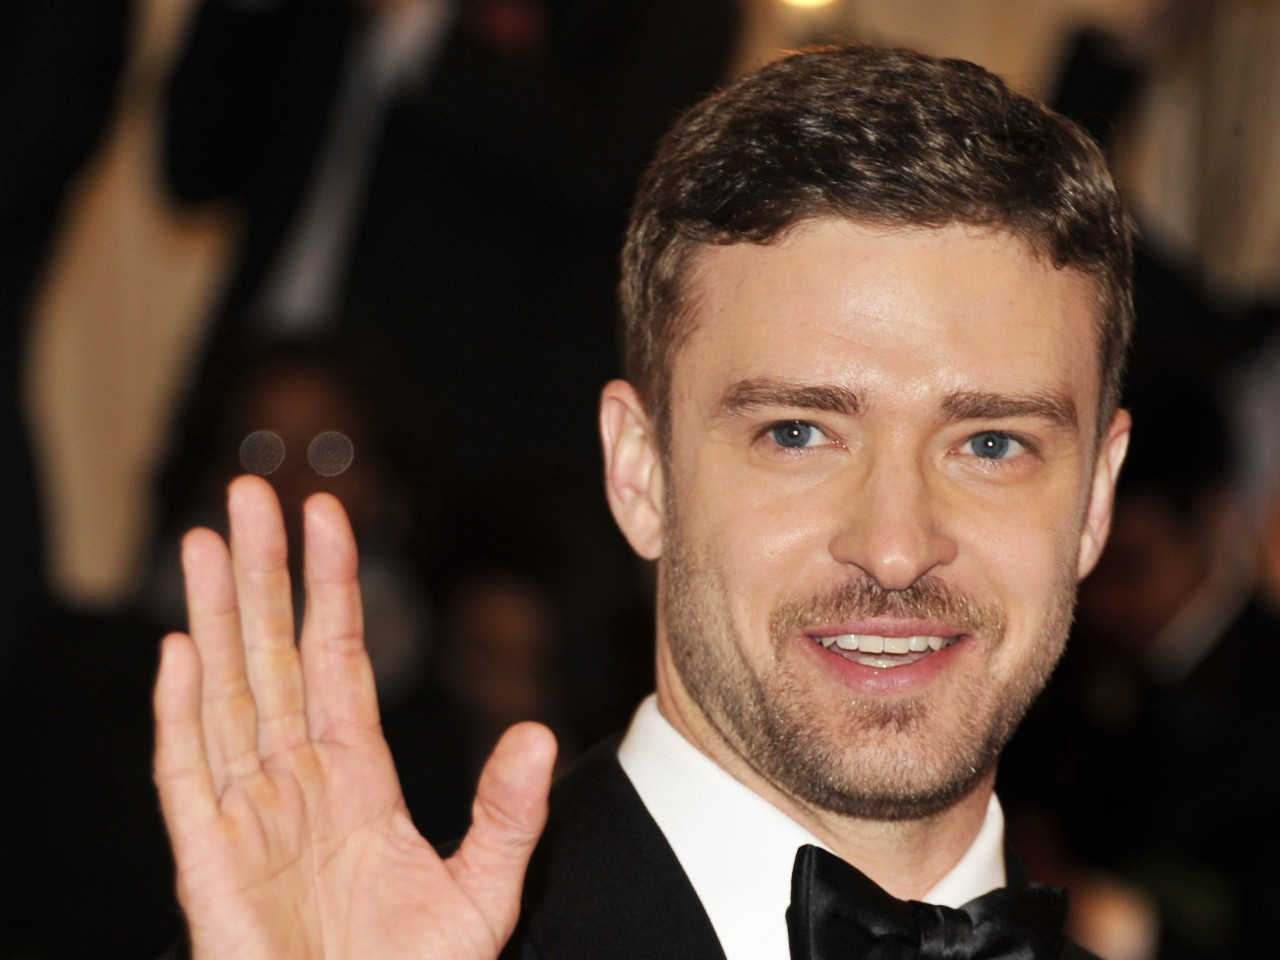 Justin Timberlake Disses Donald Sterling At Billboard